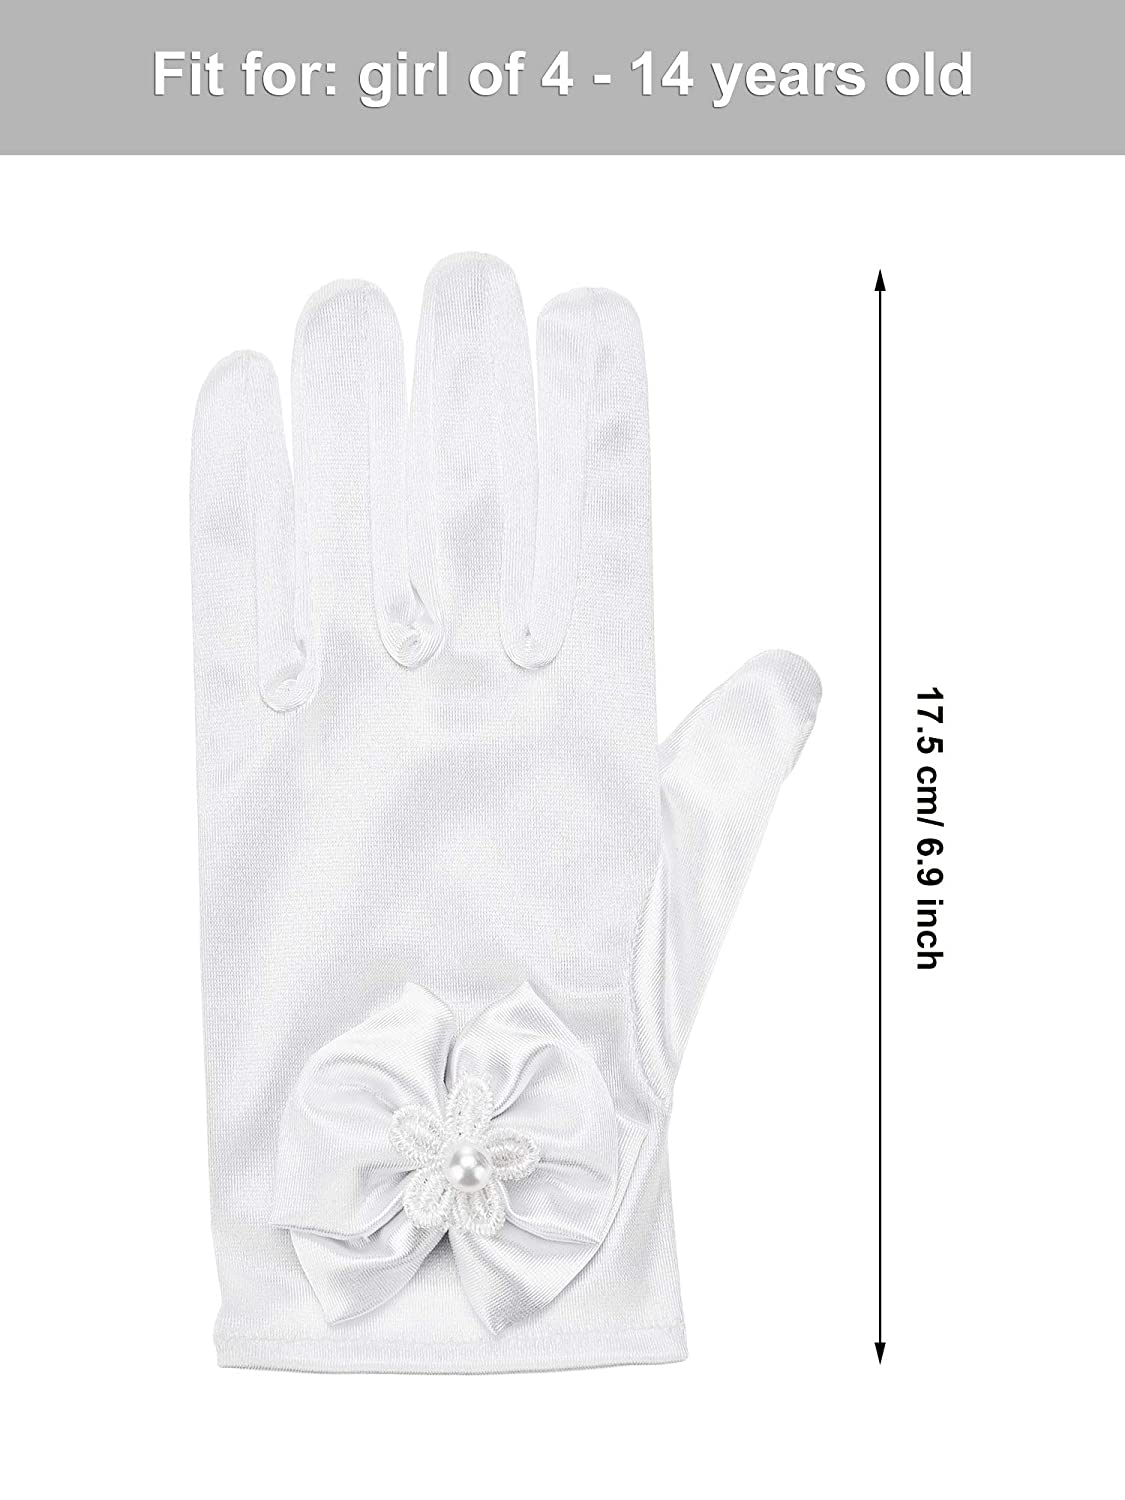 Chuangdi Flower Girl Gloves Short Princess Gloves Bow Tie Gloves Women Faux Pearl Gloves for Wedding Party First Communion